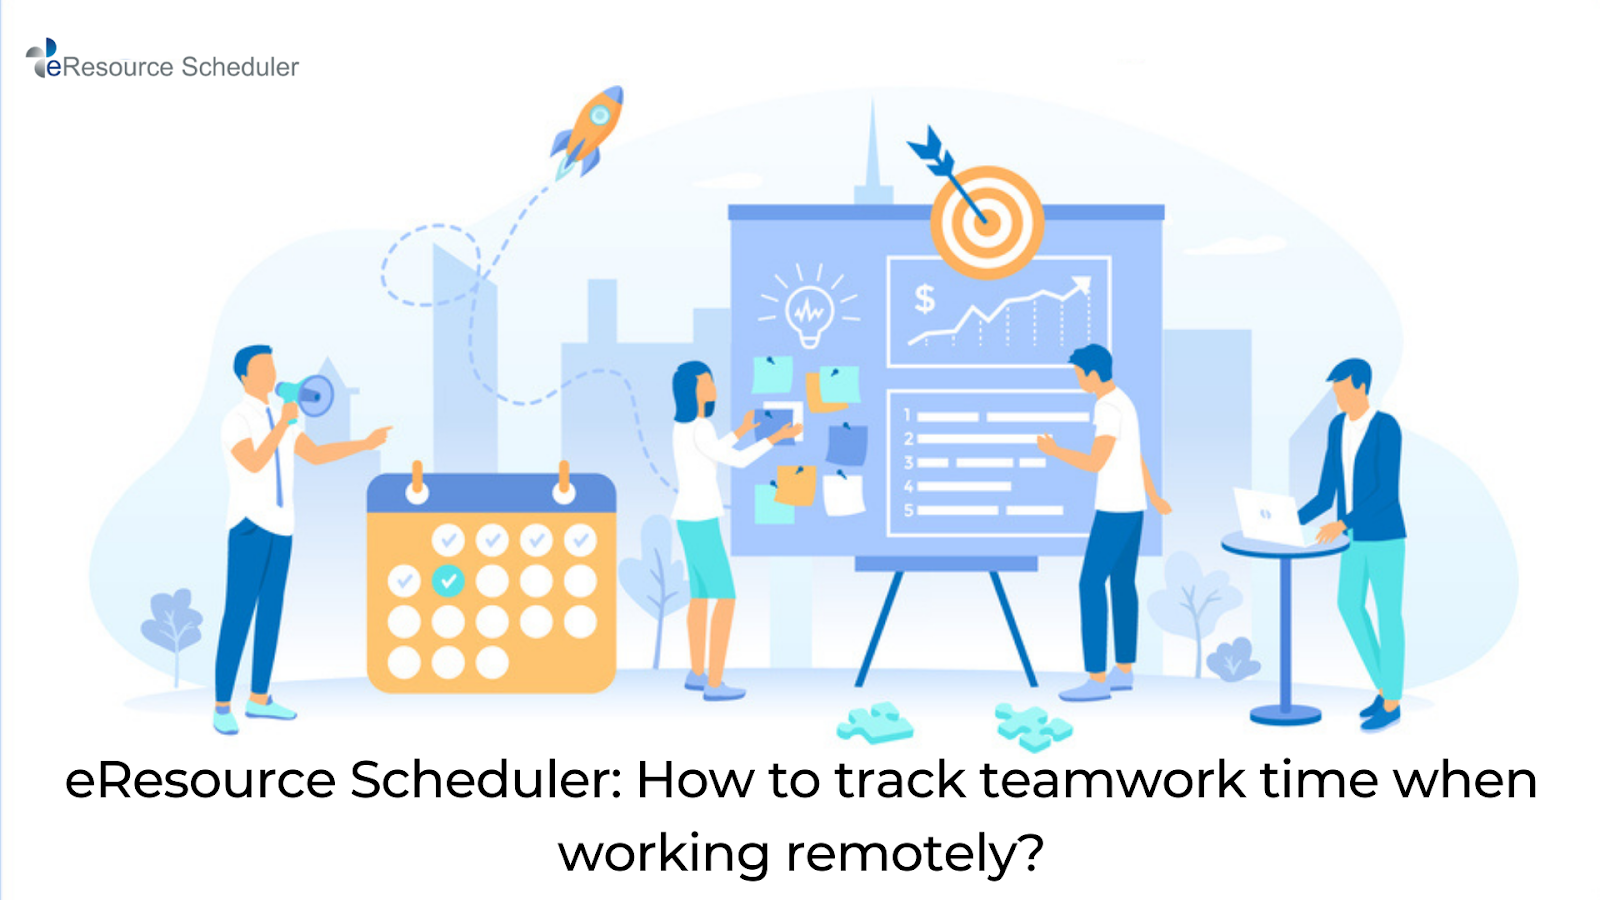 eResource Scheduler has the best teamwork time tracking tools that will help you to efficiently track and manage the workload in a balanced way across your team.